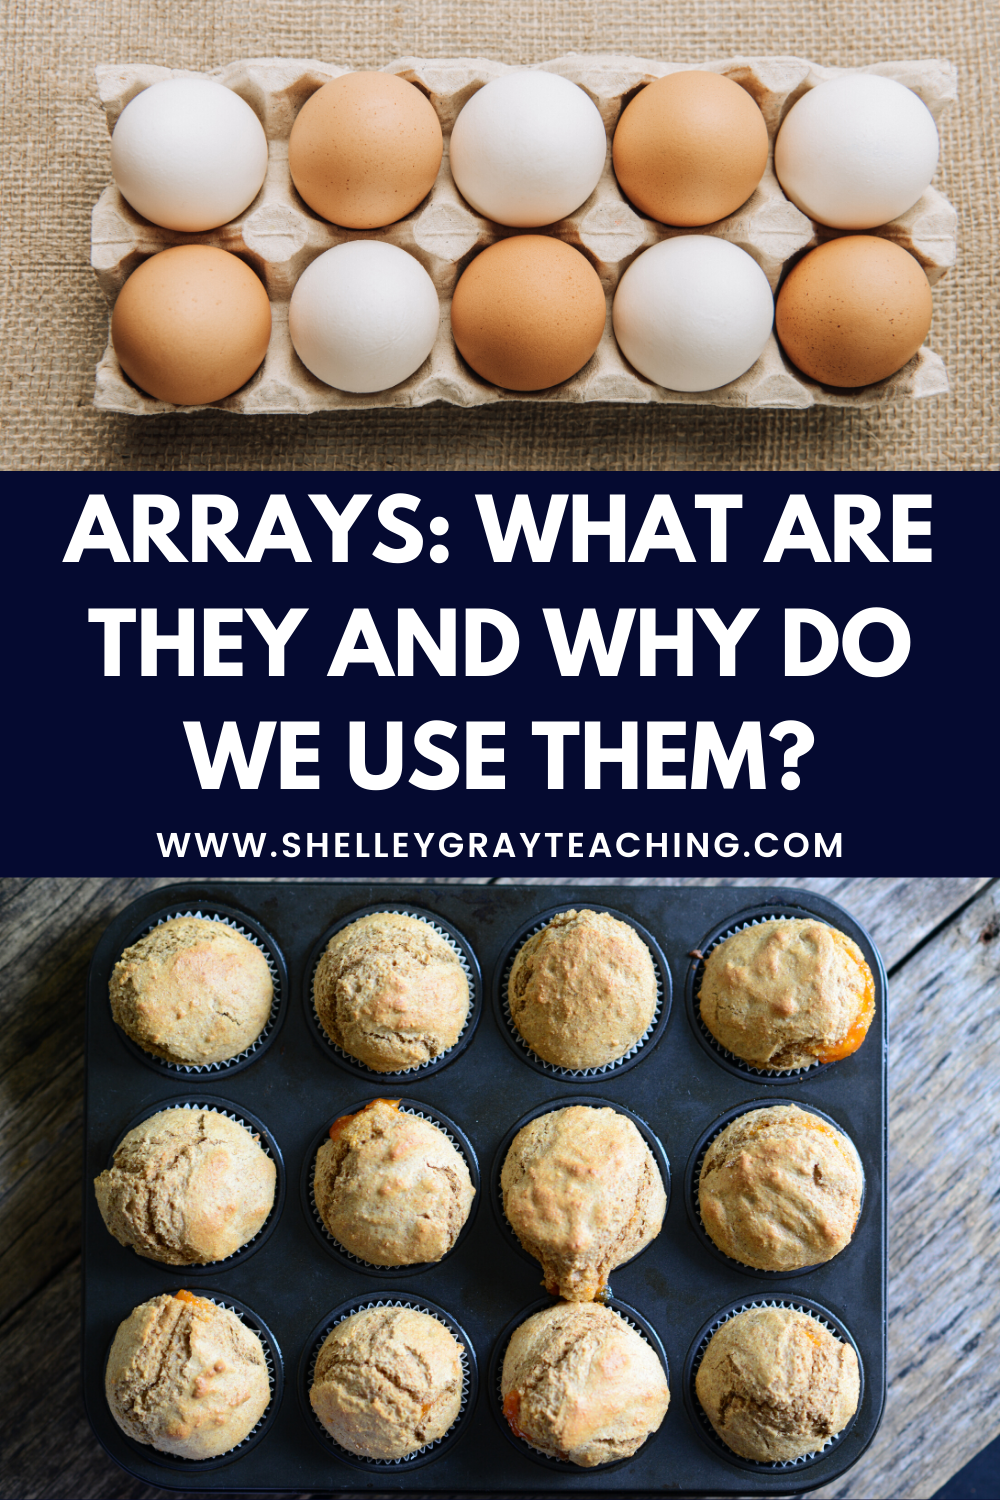 Arrays: What Are They and Why Do We Use Them?